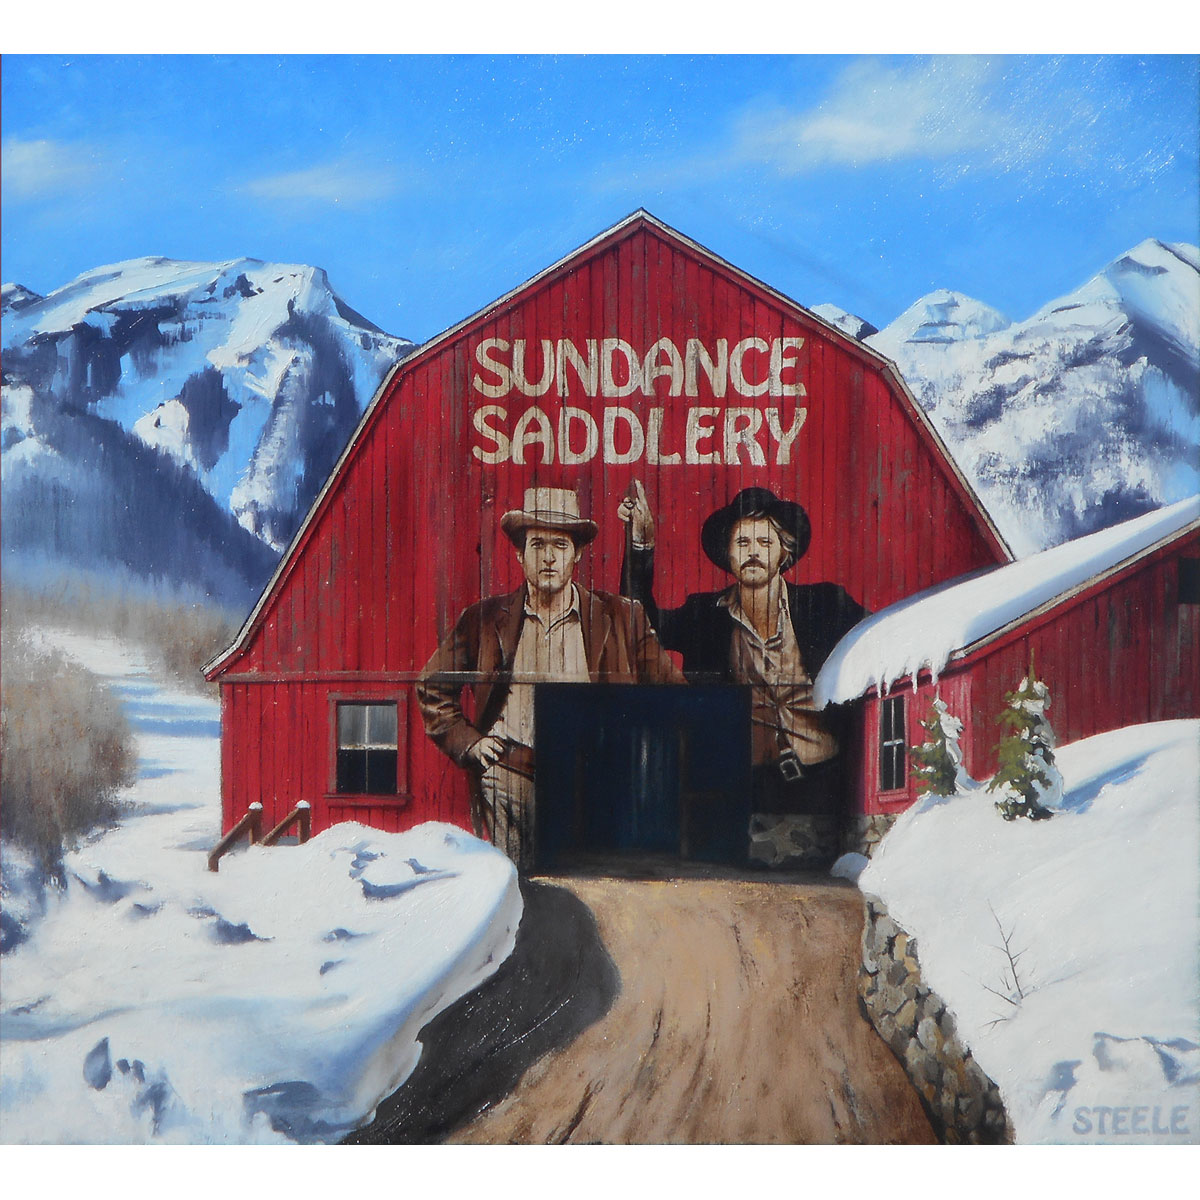 Sundance Saddlery by Ben Steele